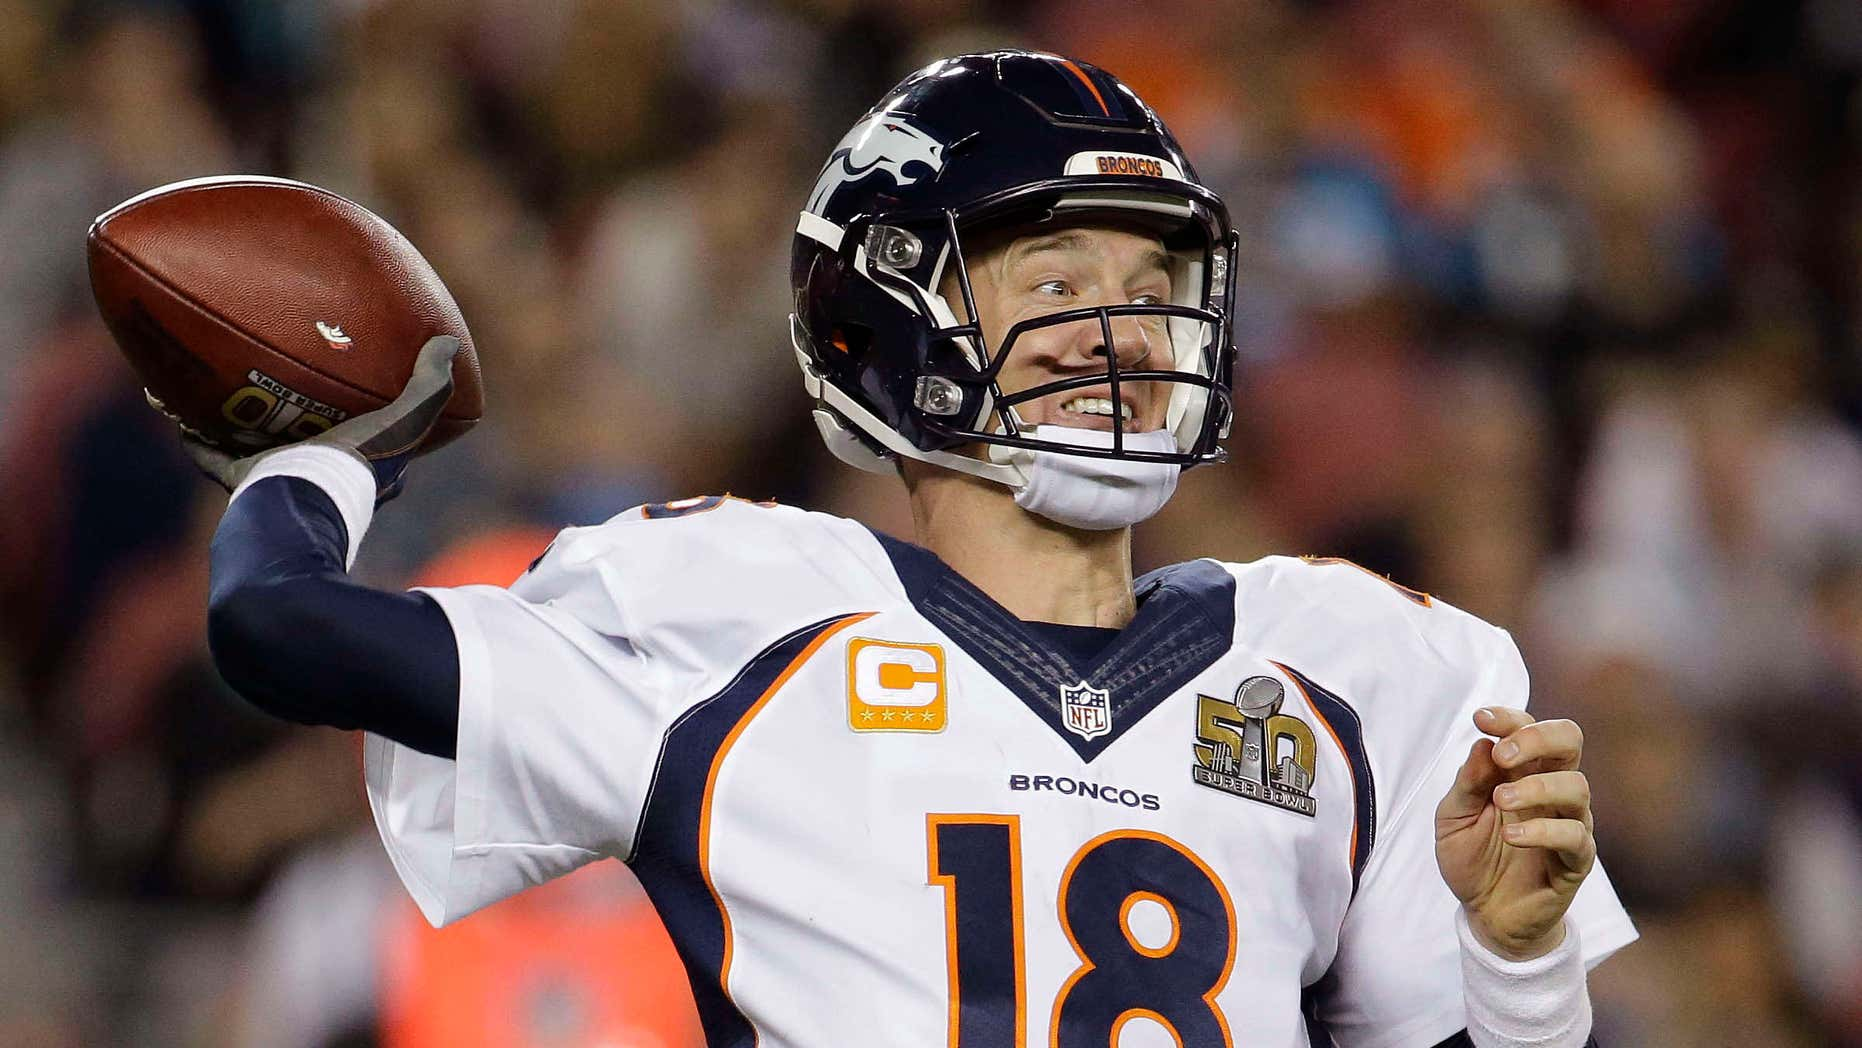 FILE - In this Sunday, Feb. 7, 2016 file photo, Denver Broncos' Peyton Manning (18) passes against the Carolina Panthers during the second half of the NFL Super Bowl 50 football game in Santa Clara, Calif.